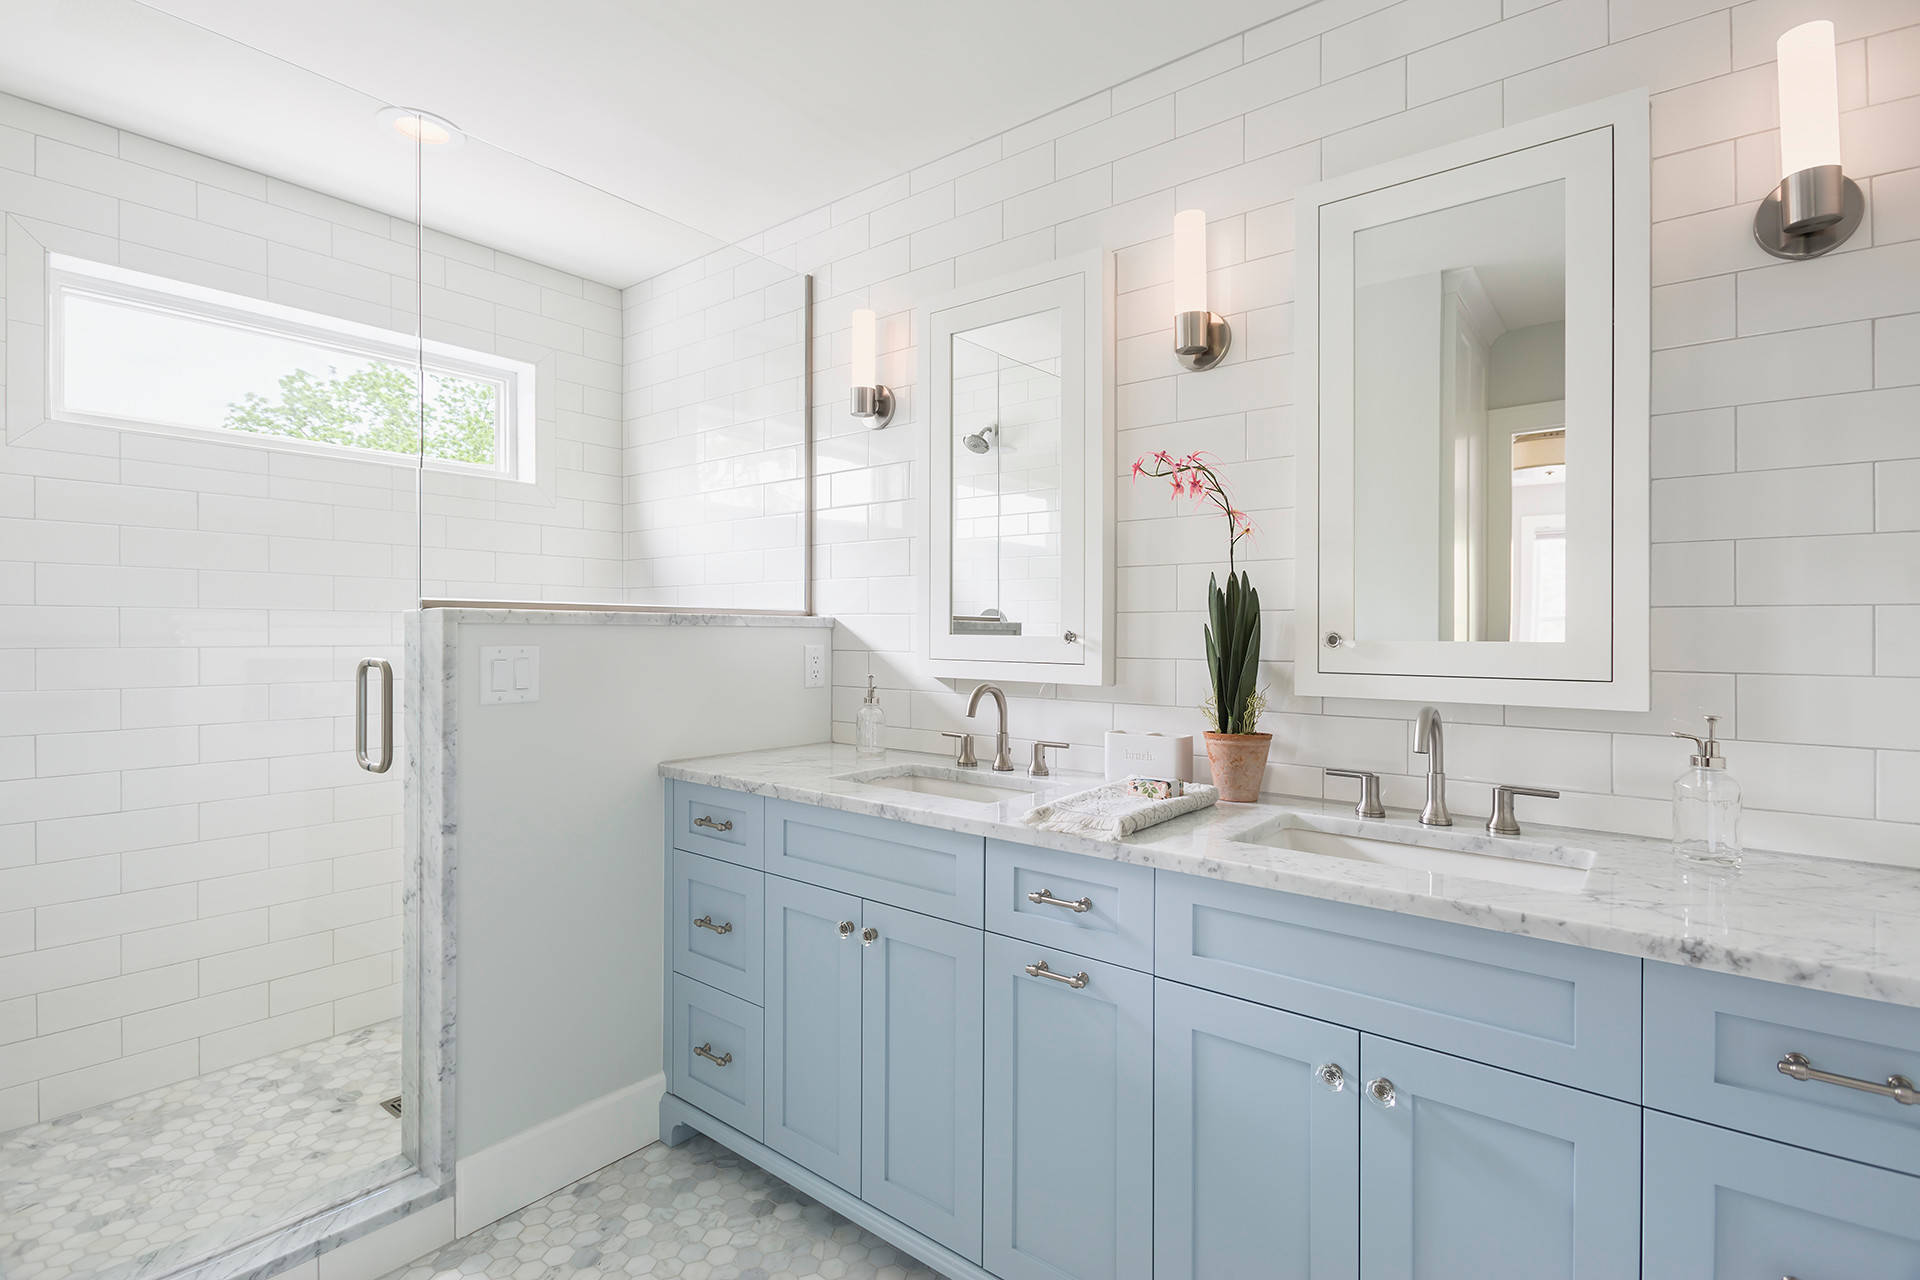 75 Beautiful Bathroom With Blue Cabinets Pictures Ideas February 2021 Houzz